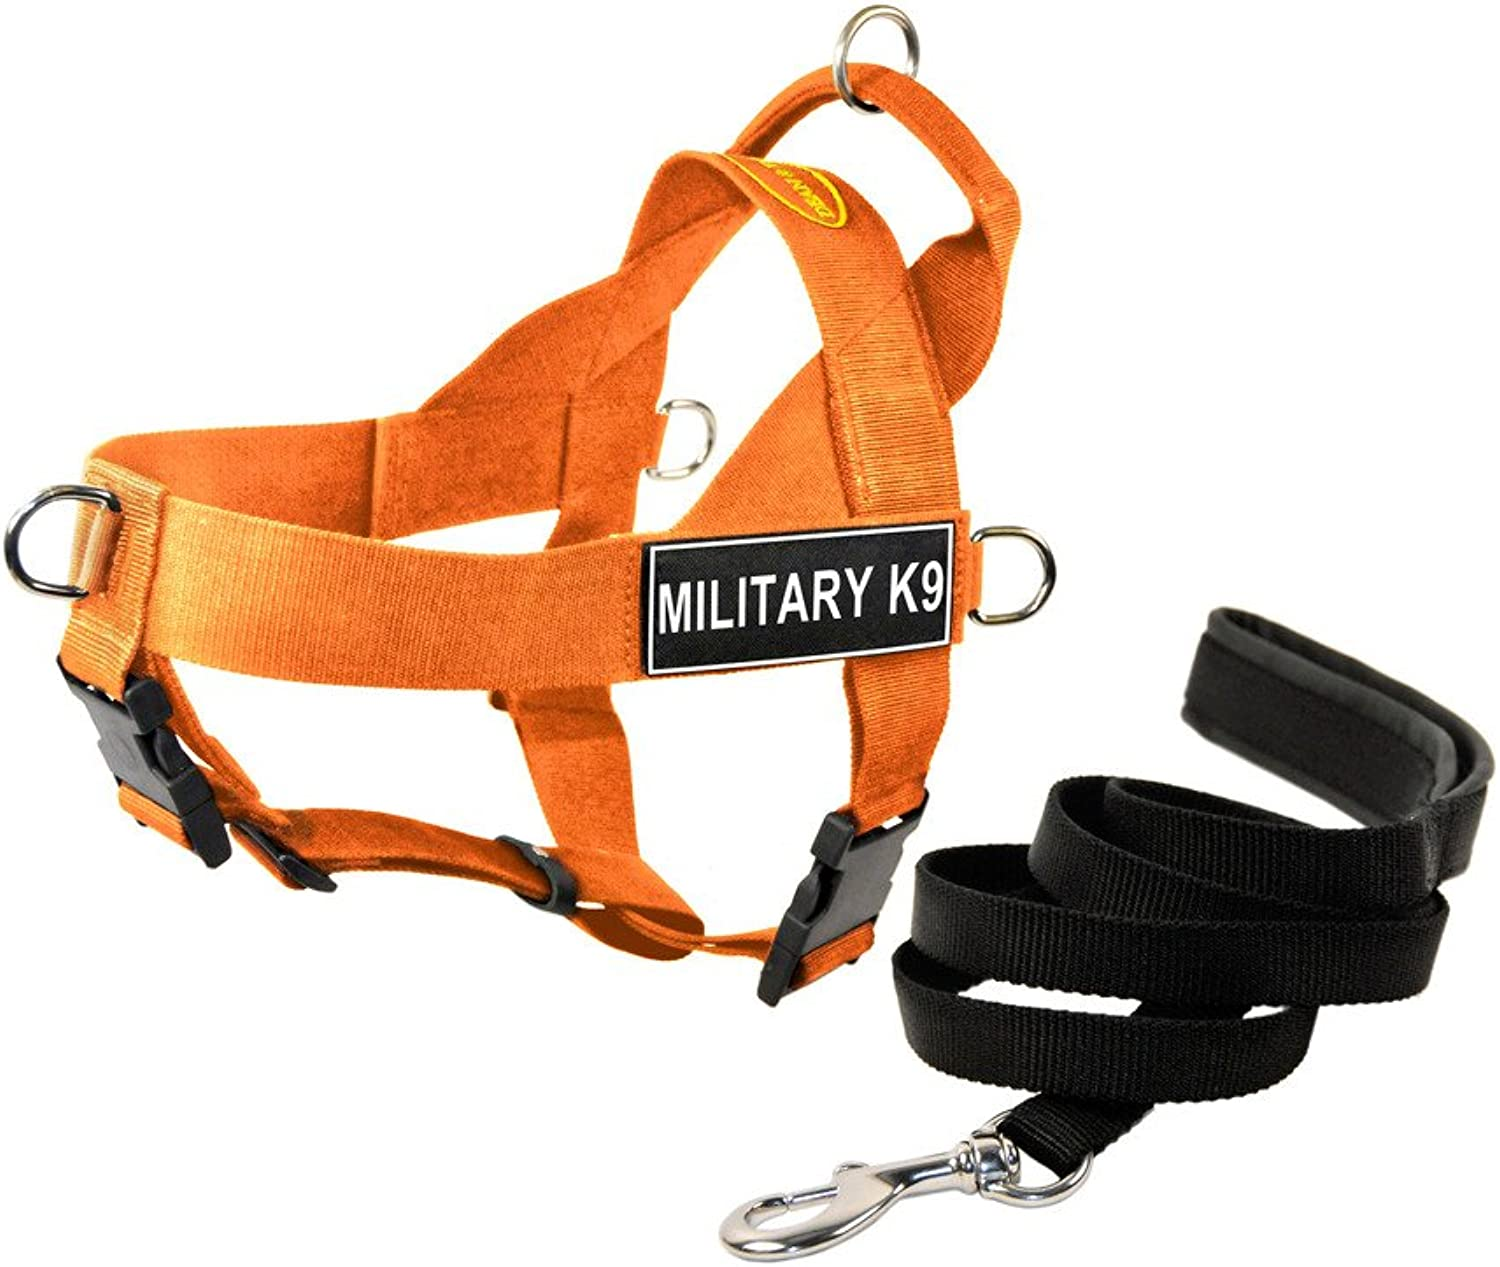 Dean & Tyler DT Universal No Pull Dog Harness with Military K9 Patches and Puppy Leash, orange, XLarge